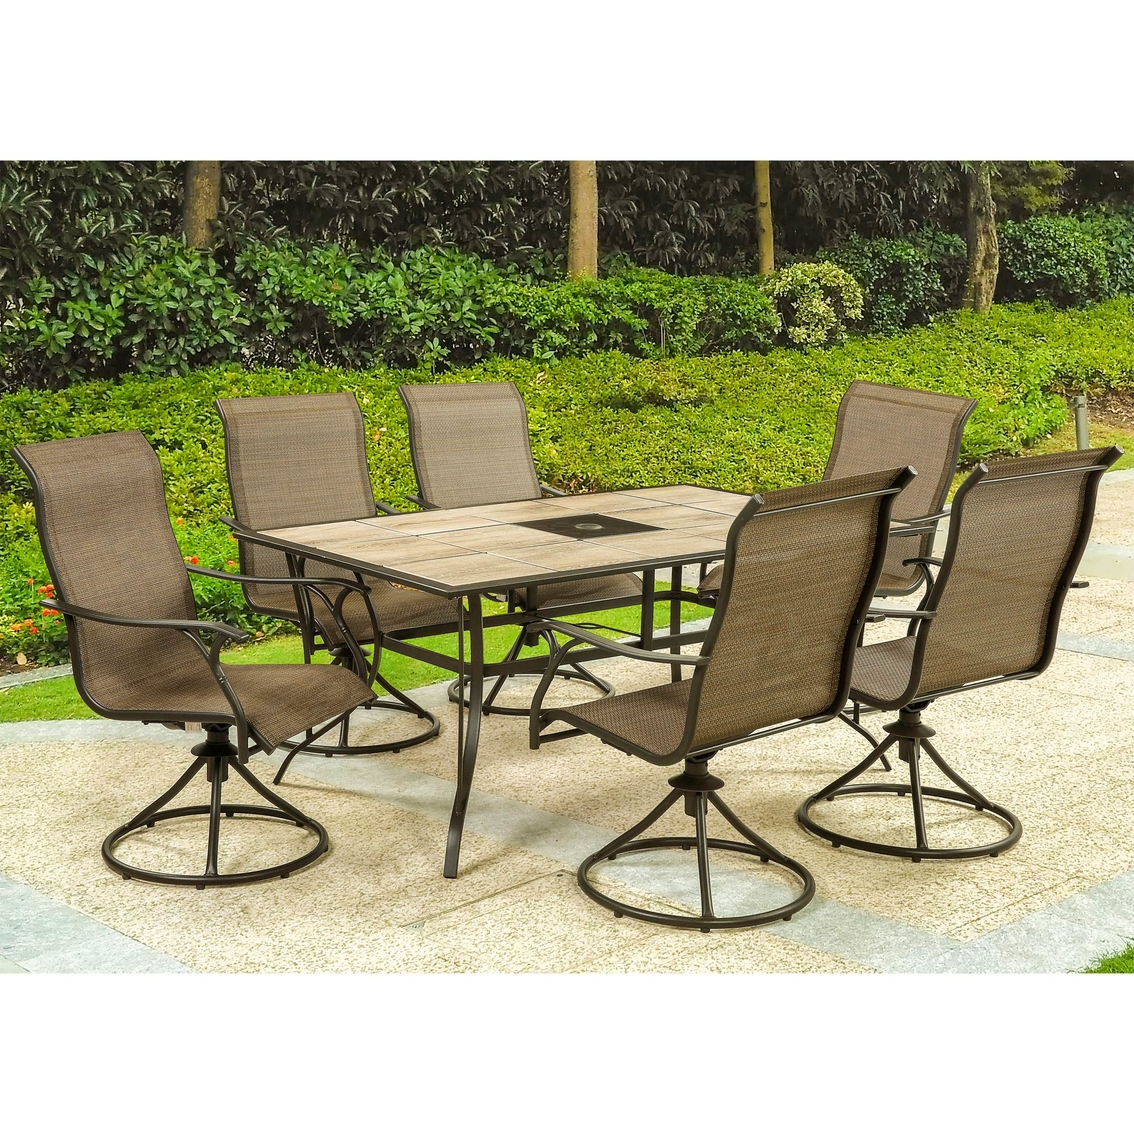 Courtyard Creations Riviera 7 Pc Sling Patio Dining Set